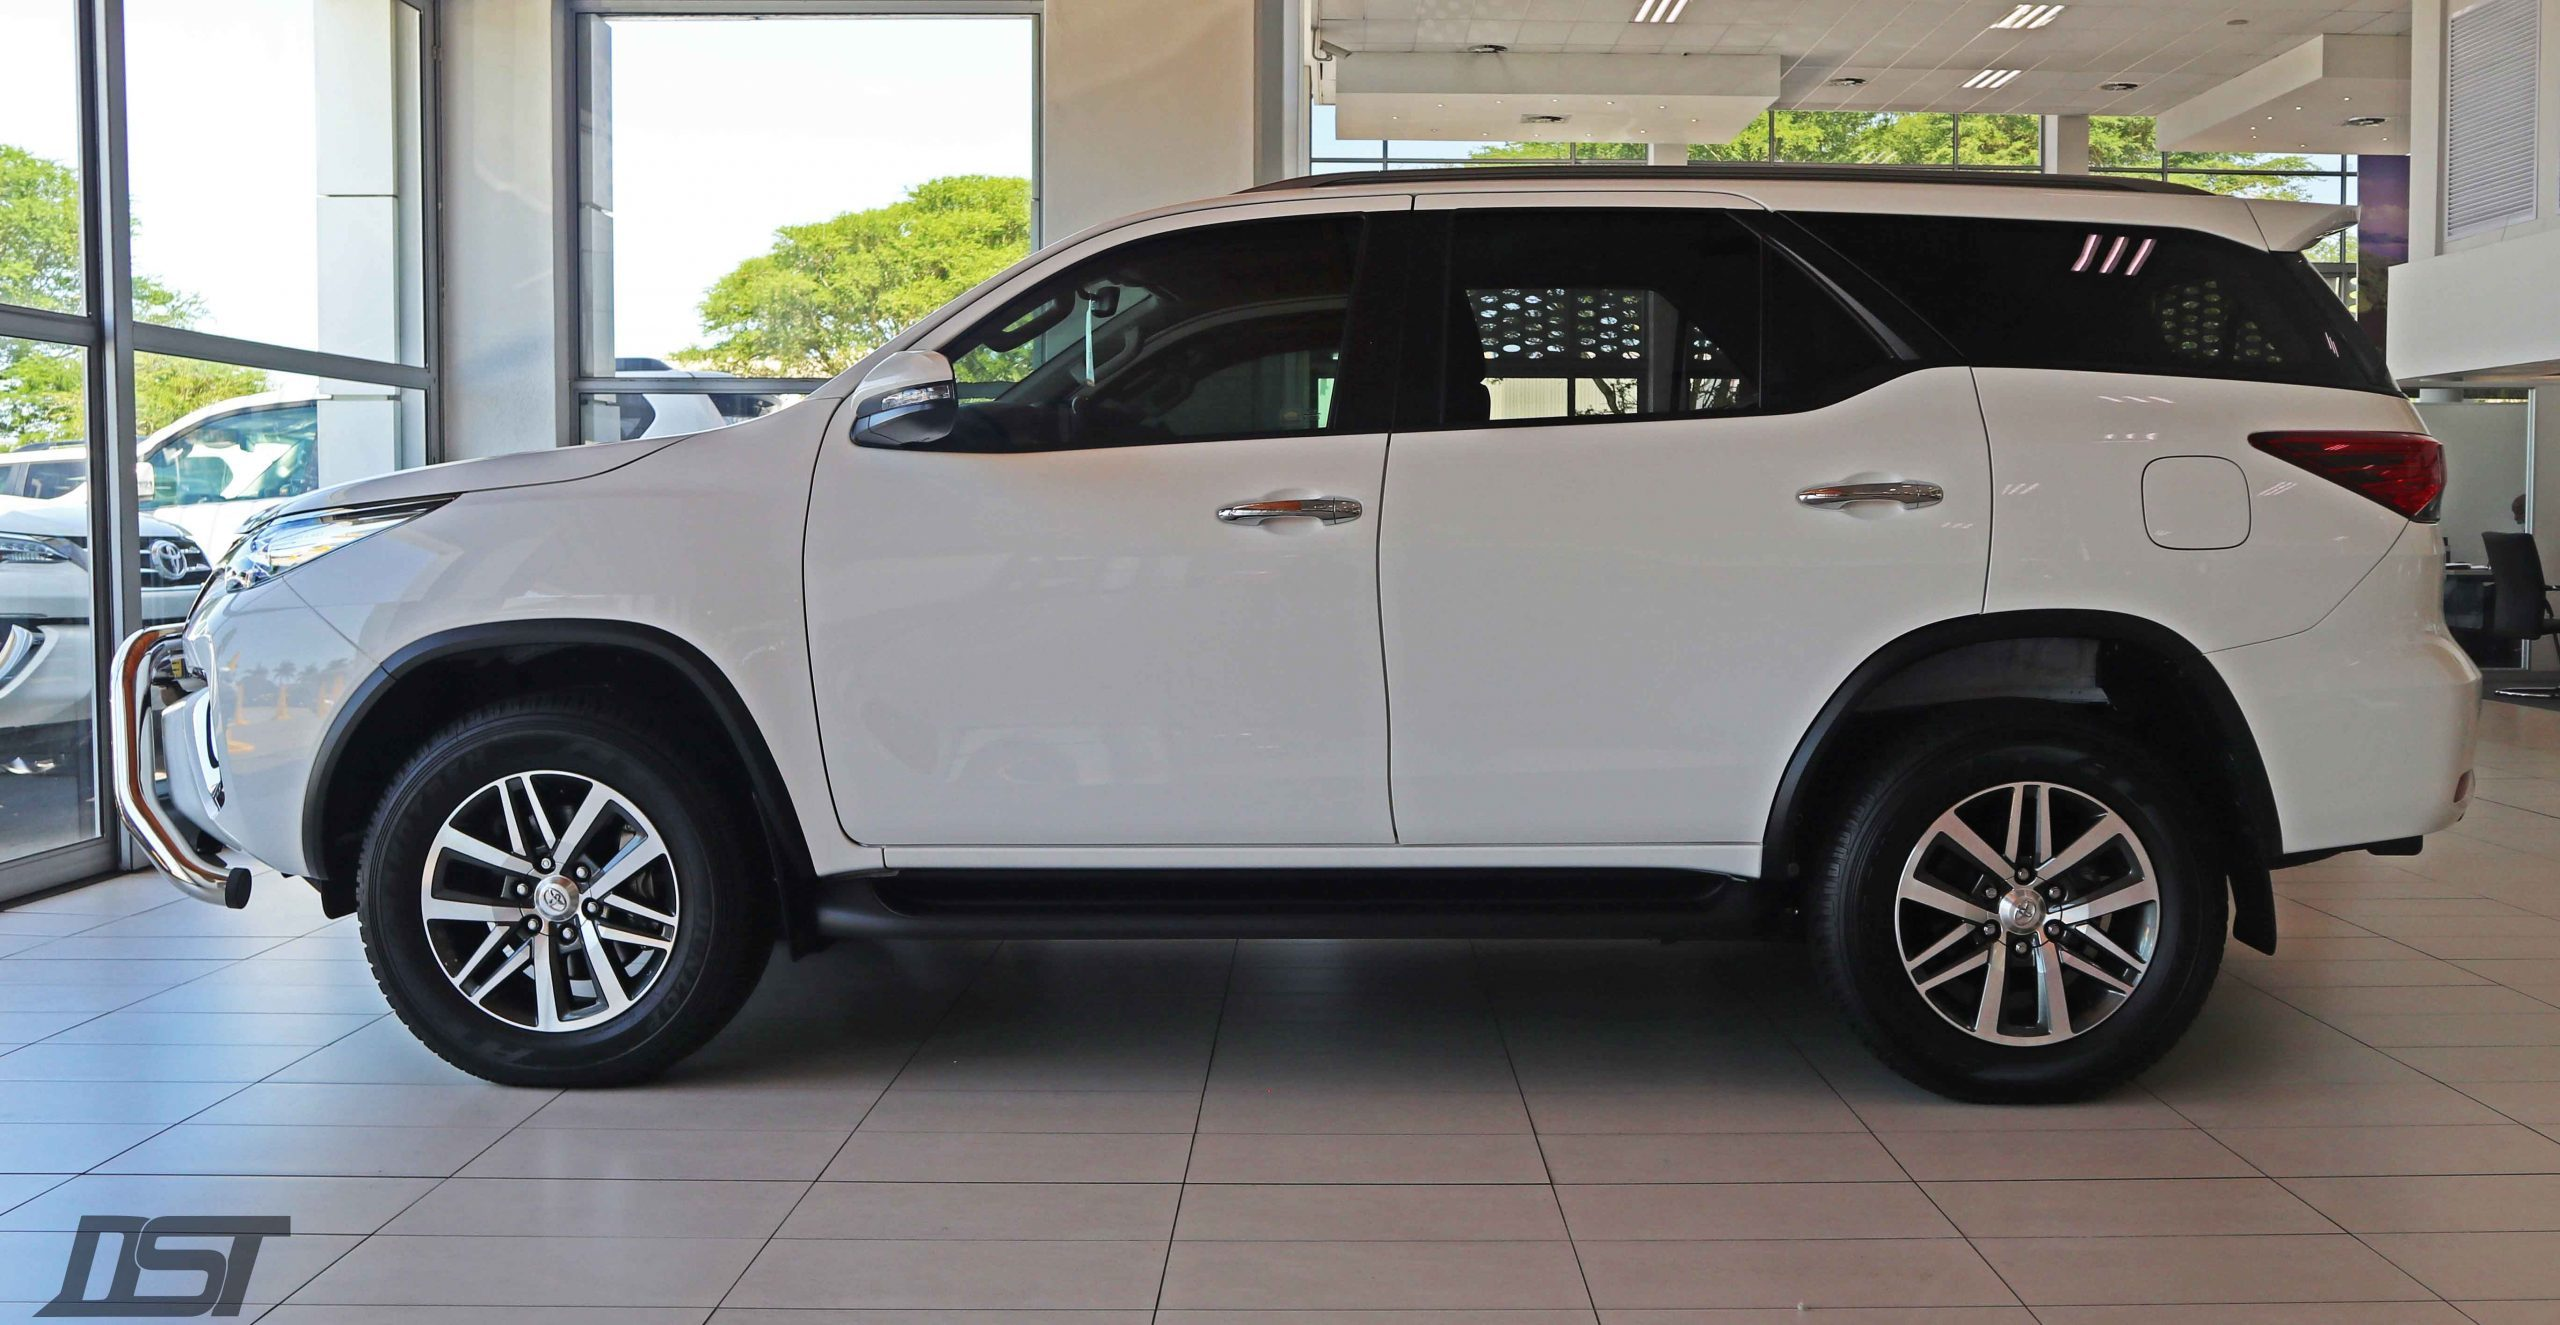 Toyota Fortuner 2.8 GD6 Fierce Edition side view